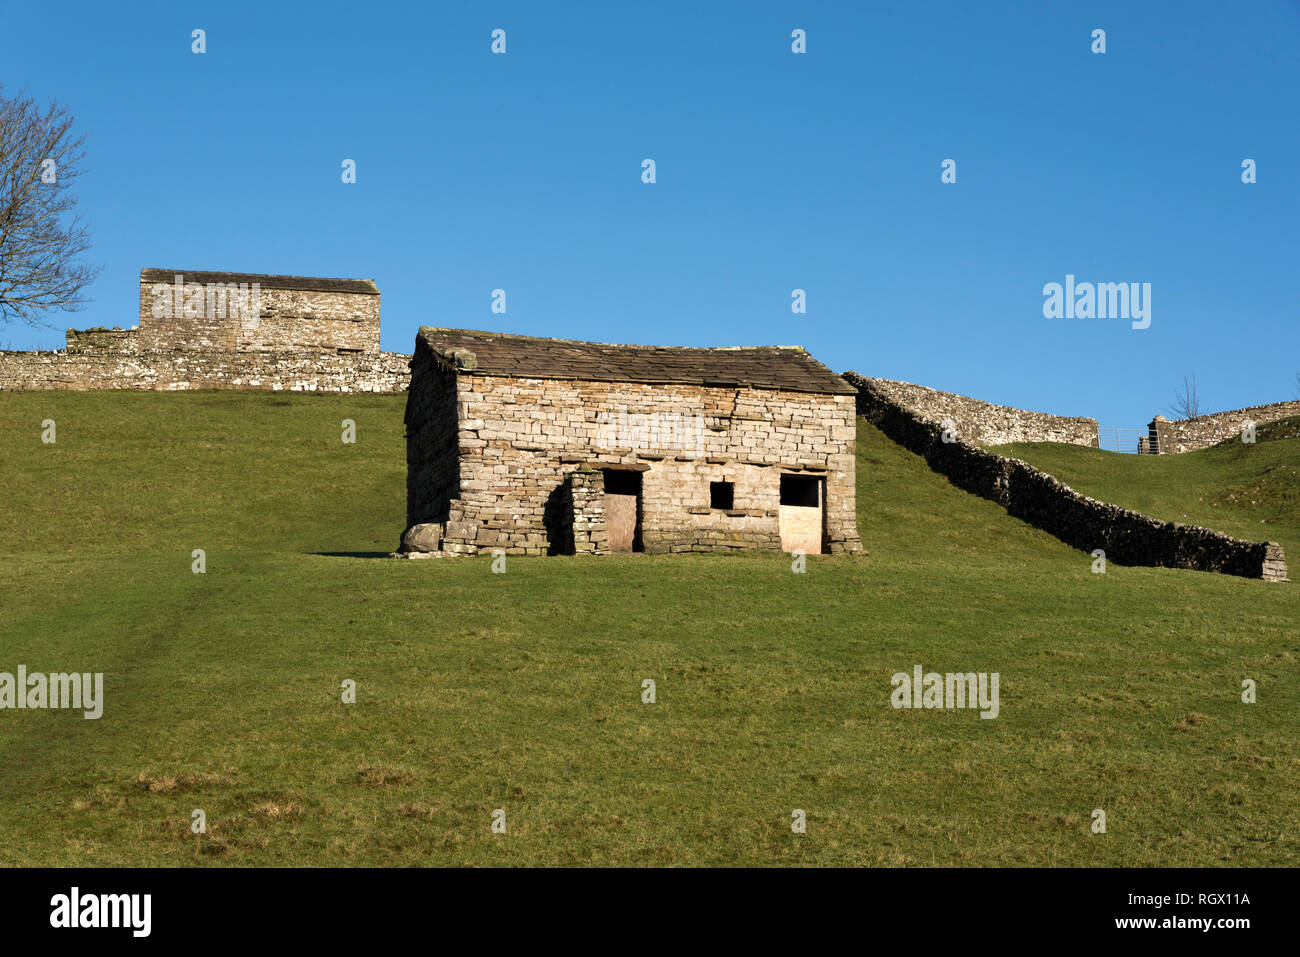 Traditional stone field barns, Sedbusk, near Hawes, Yorkshire Dales National Park - Stock Image